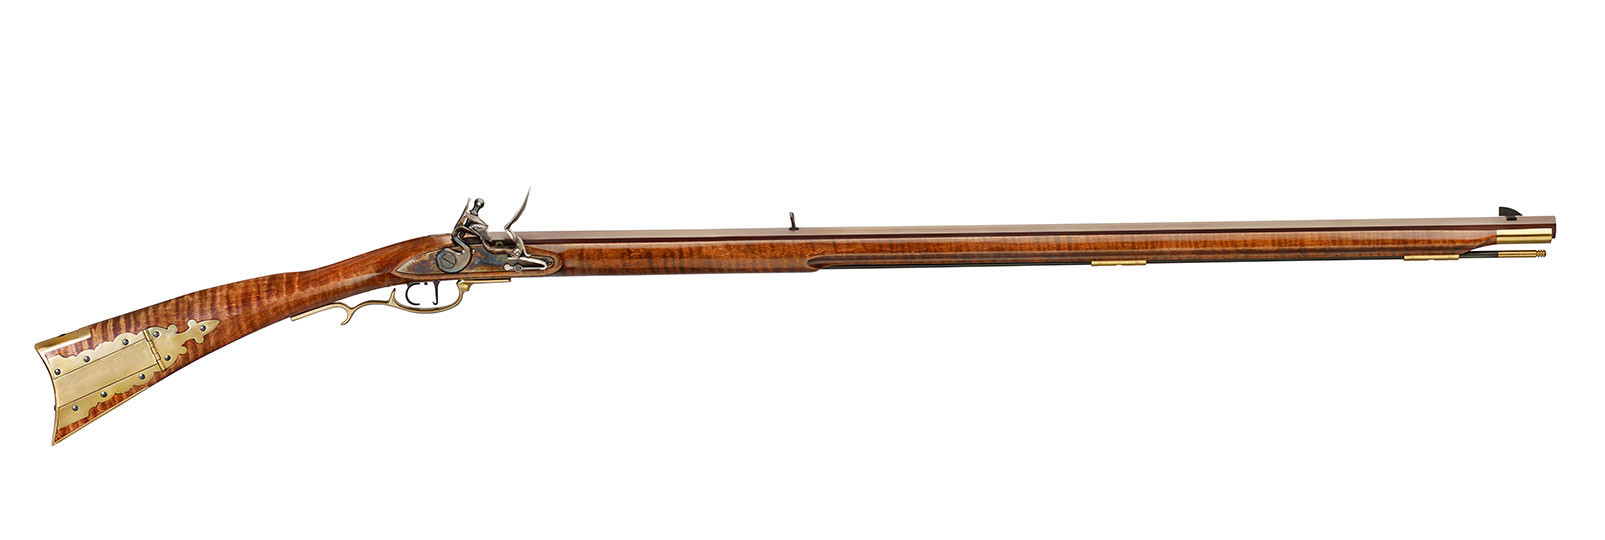 "Frontier ""maple"" DELUXE Rifle flintlock model"